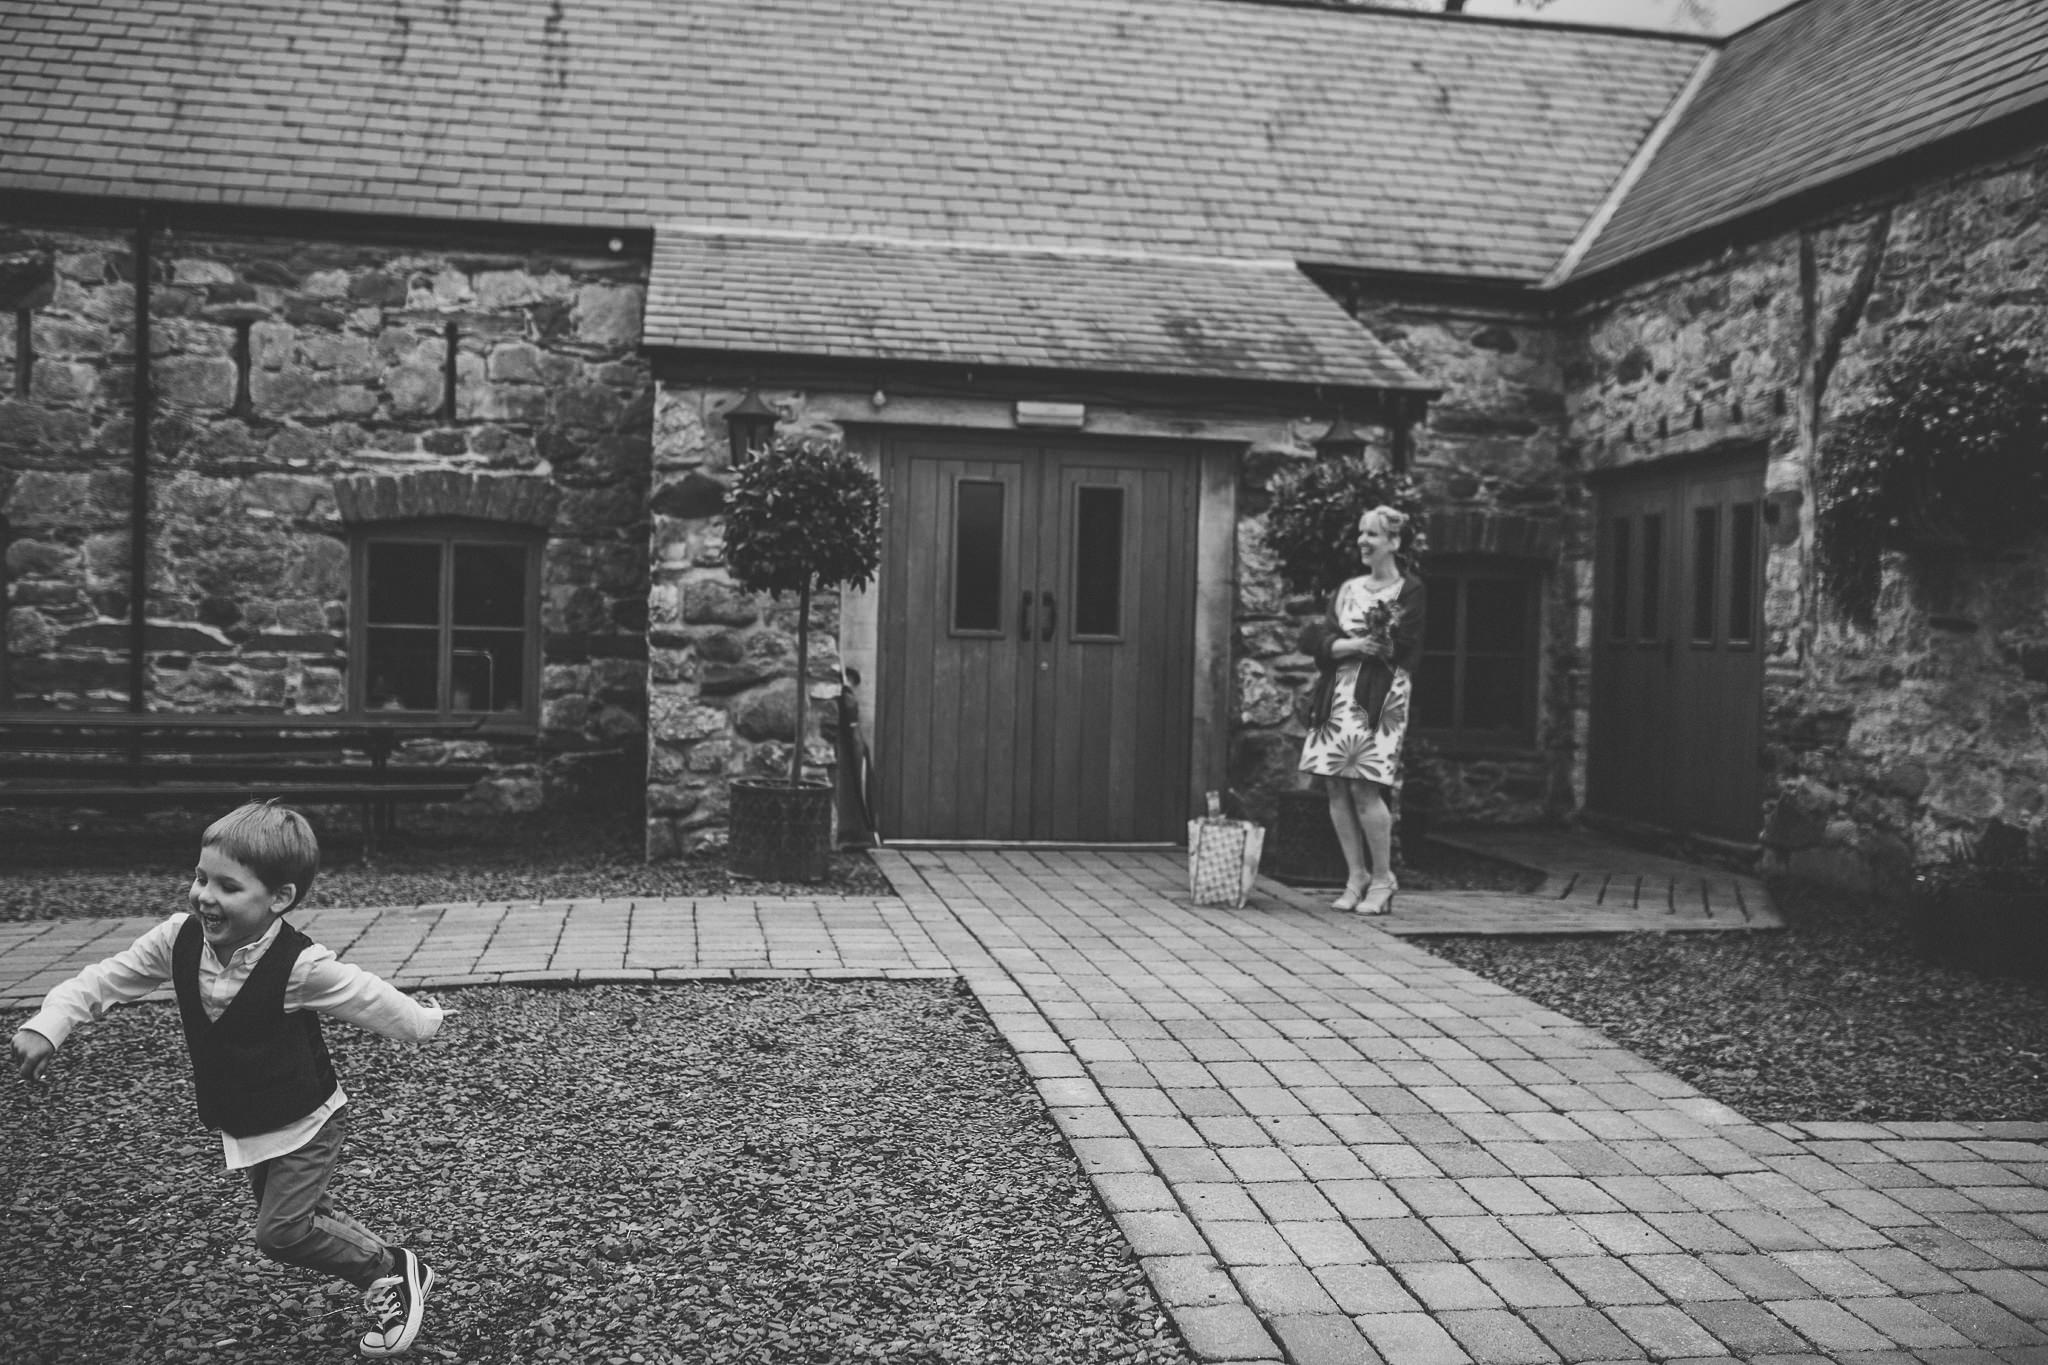 plas-isaf-corwen-north wales wedding-photography-photographer-91020